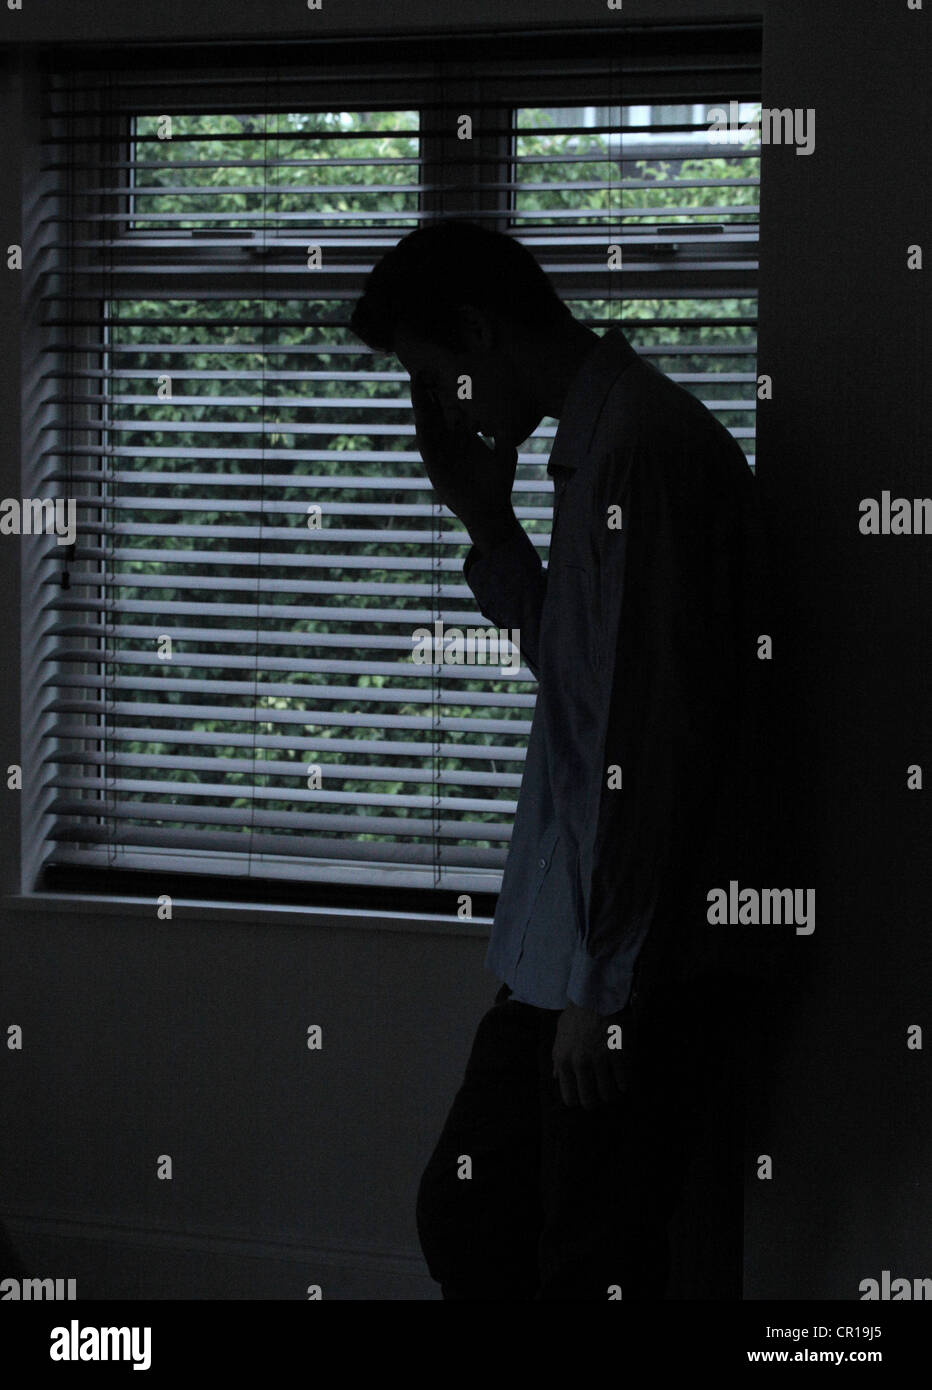 Silhouette of a male standing in a dark room with light from a window with blinds showing his shape, hand to face. - Stock Image